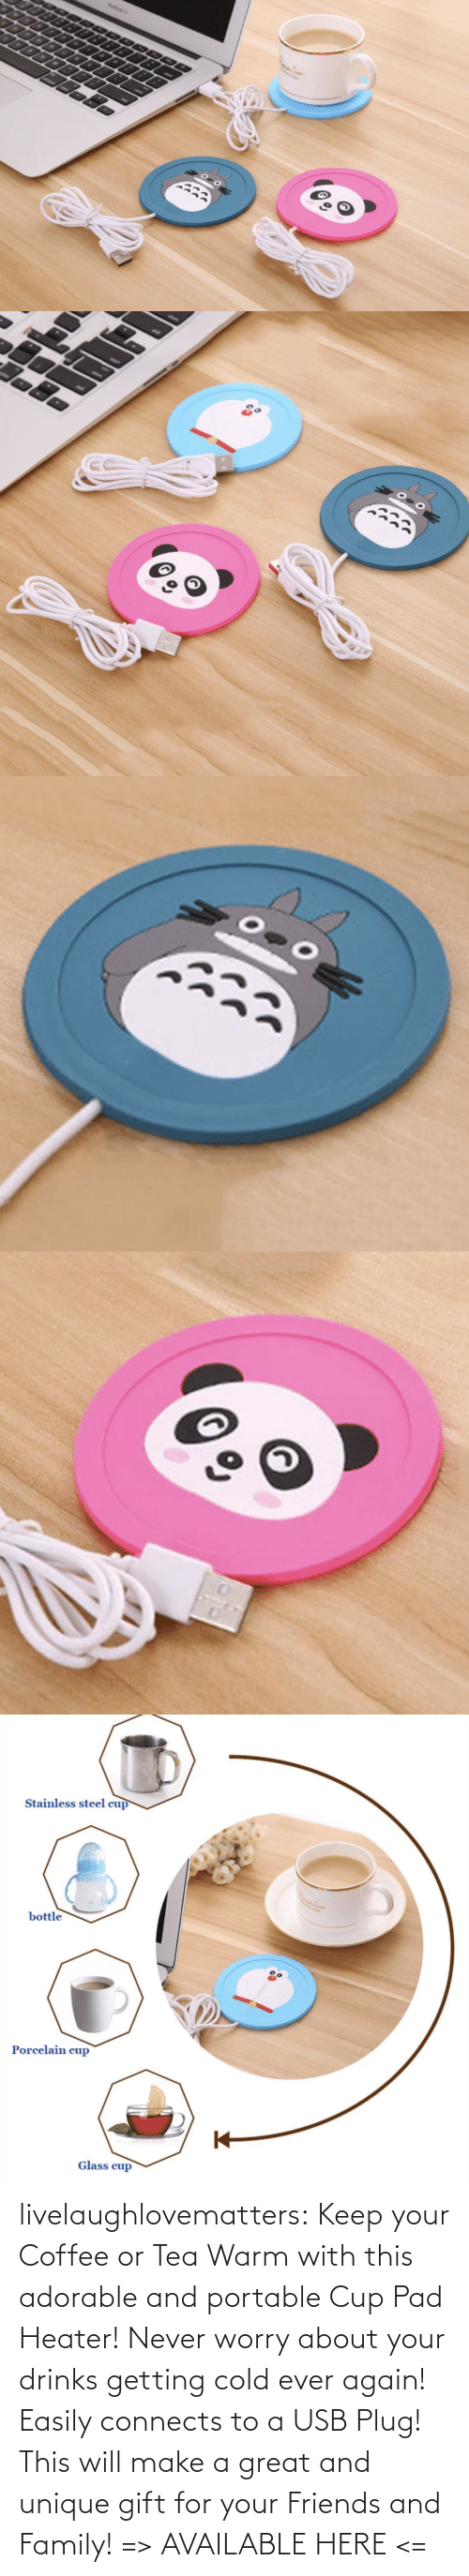 warm: livelaughlovematters: Keep your Coffee or Tea Warm with this adorable and portable Cup Pad Heater! Never worry about your drinks getting cold ever again! Easily connects to a USB Plug! This will make a great and unique gift for your Friends and Family! => AVAILABLE HERE <=